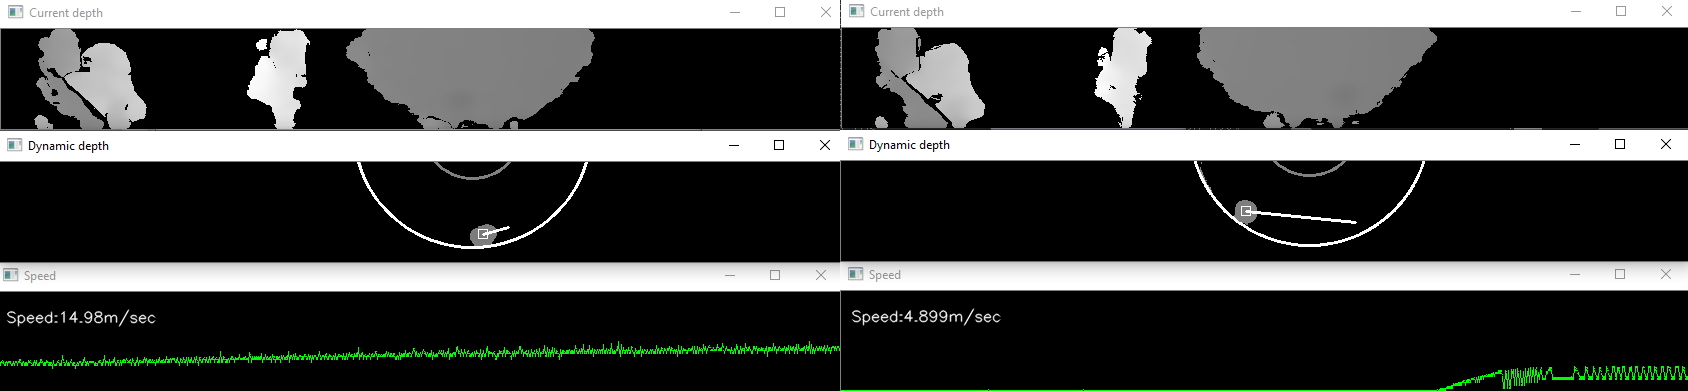 Fig. 5: Speed measurement of moving cylinders from Figure 4.   LEFT: 400fps capture, and RIGHT: 30fps capture.  Each image shows original depth (upper), moving object depth and motion vector (middle), and measured speed (bottom). At 400fps, the object speed of ~15 m/sec is measured correctly, whereas for the 30fps mode it fails.